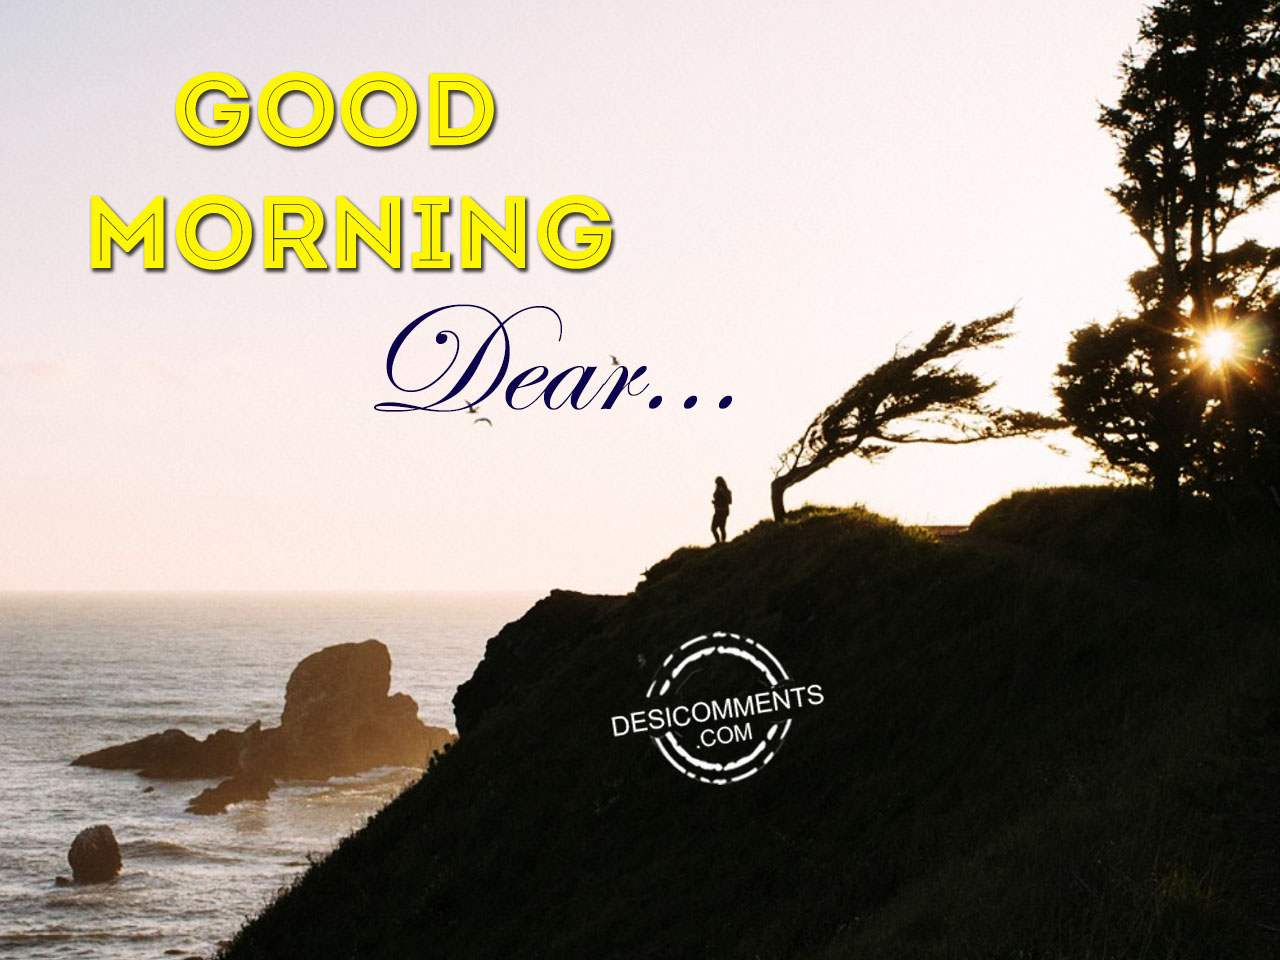 Good Morning Dear Images : Good morning pictures images graphics page